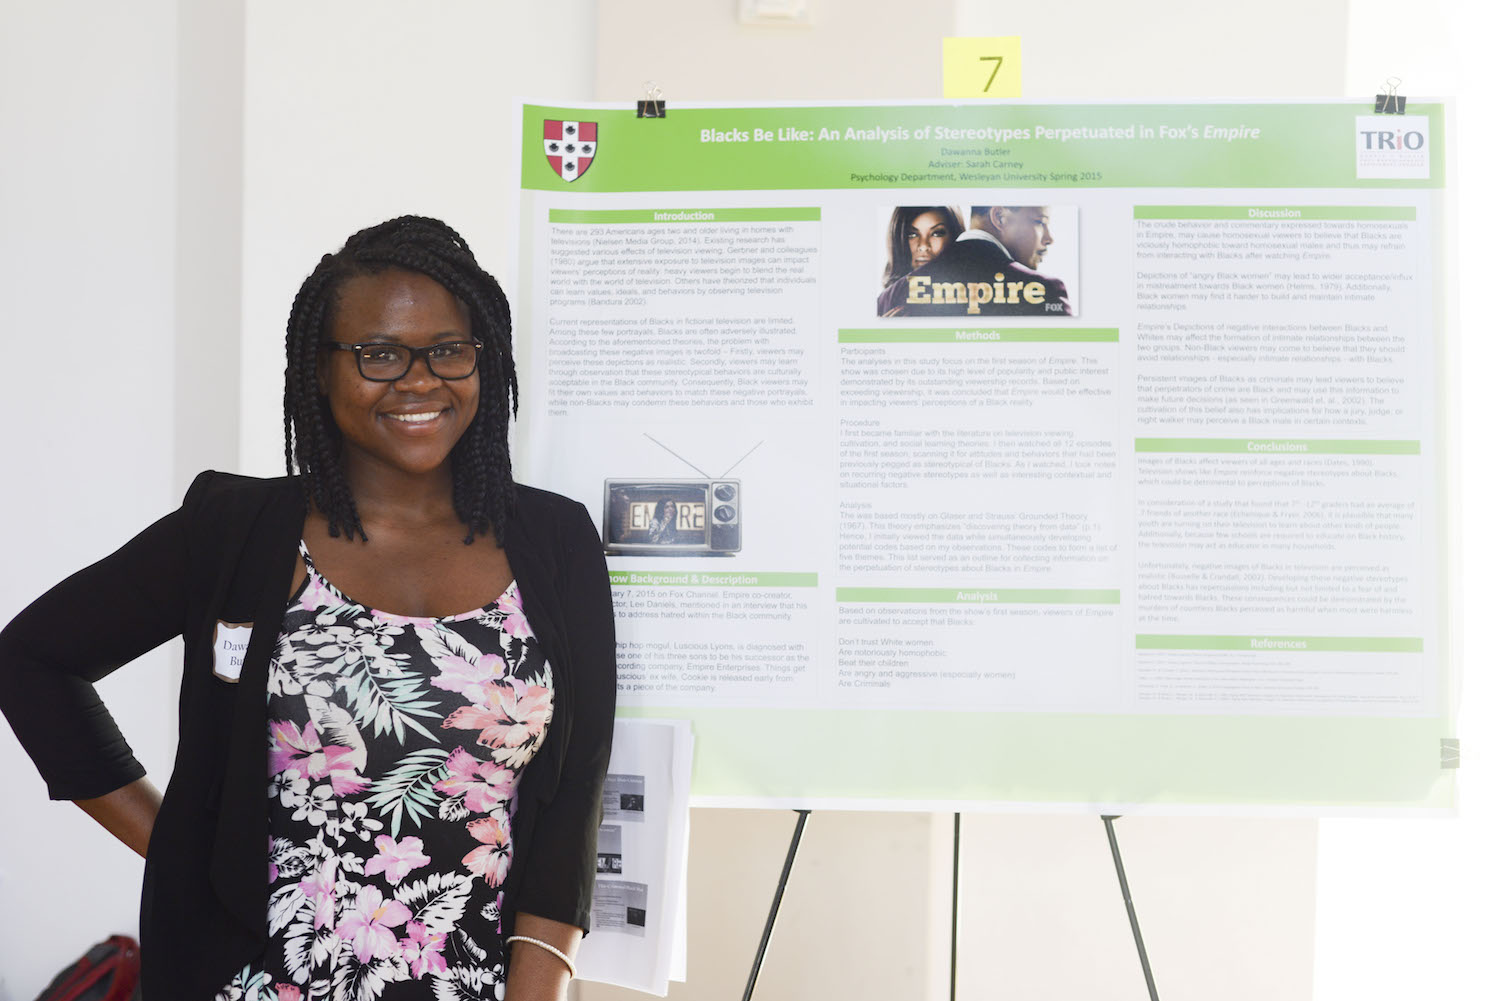 "Dawanna Butler '15 with her poster, ""Blacks Be Like: An Analysis of Stereotypes Perpetuated in Fox's Empire."""